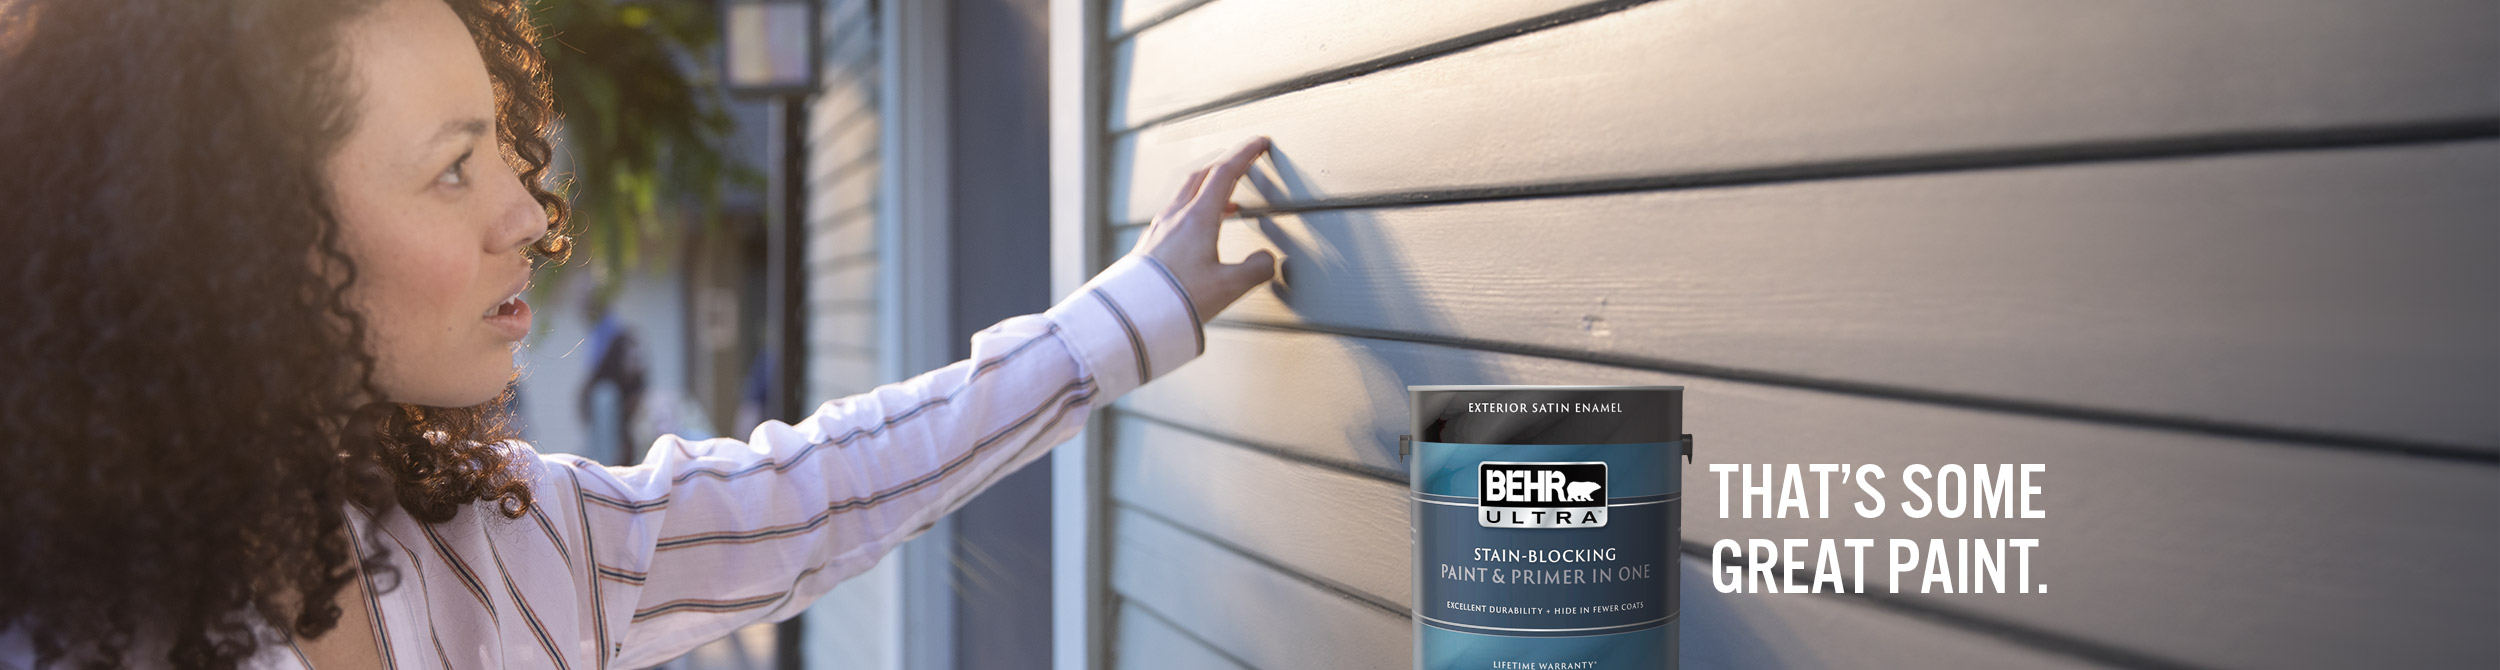 Photo of woman examining exterior house siding, can of Behr Ultra Interior Satin Enamel in foreground with text overlay that's some great paint.